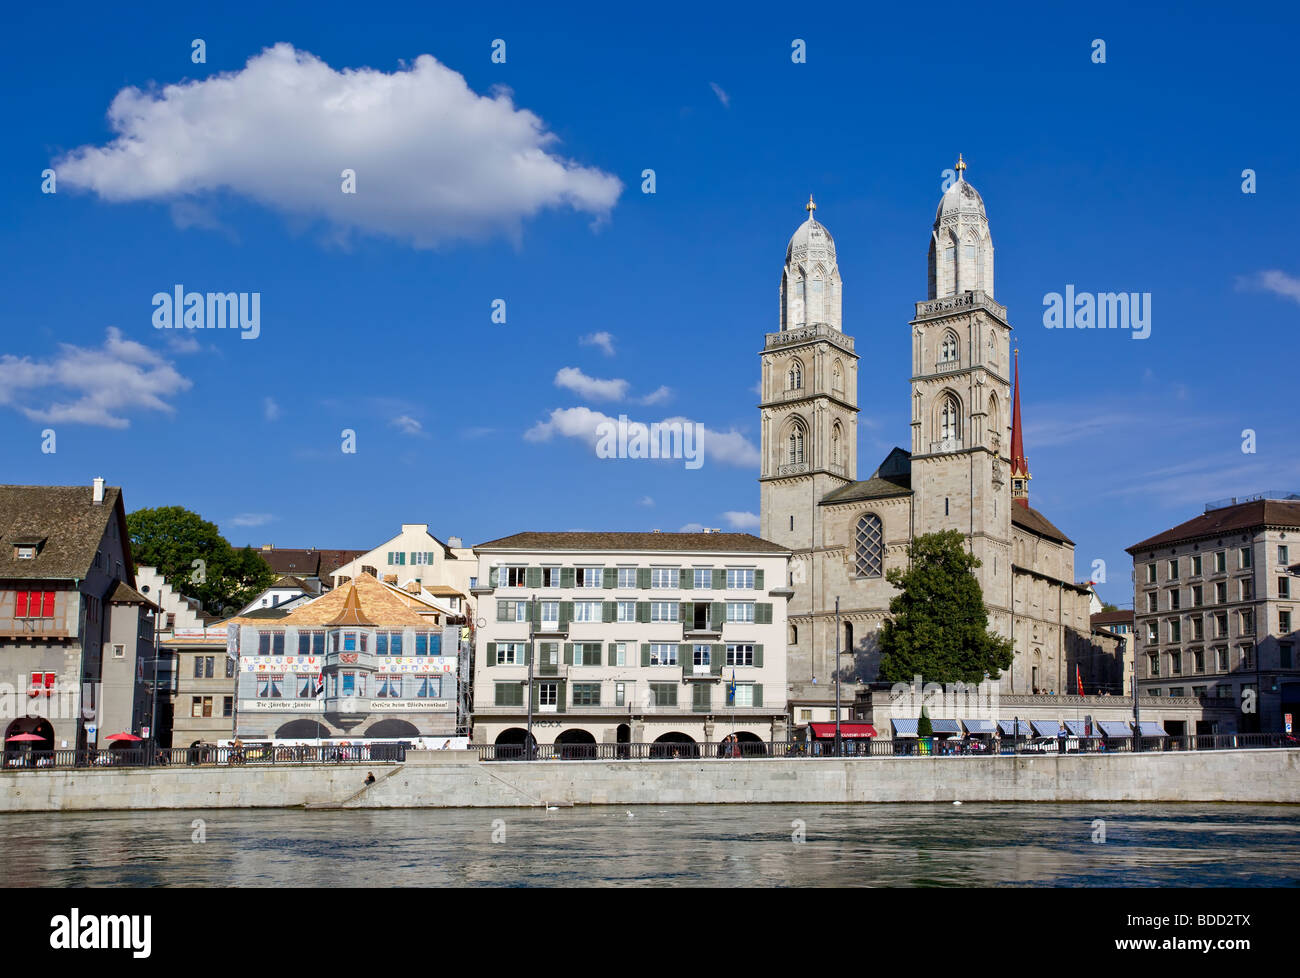 Zurich Fraumünster cathedral on the banks of the river Limmat - Stock Image